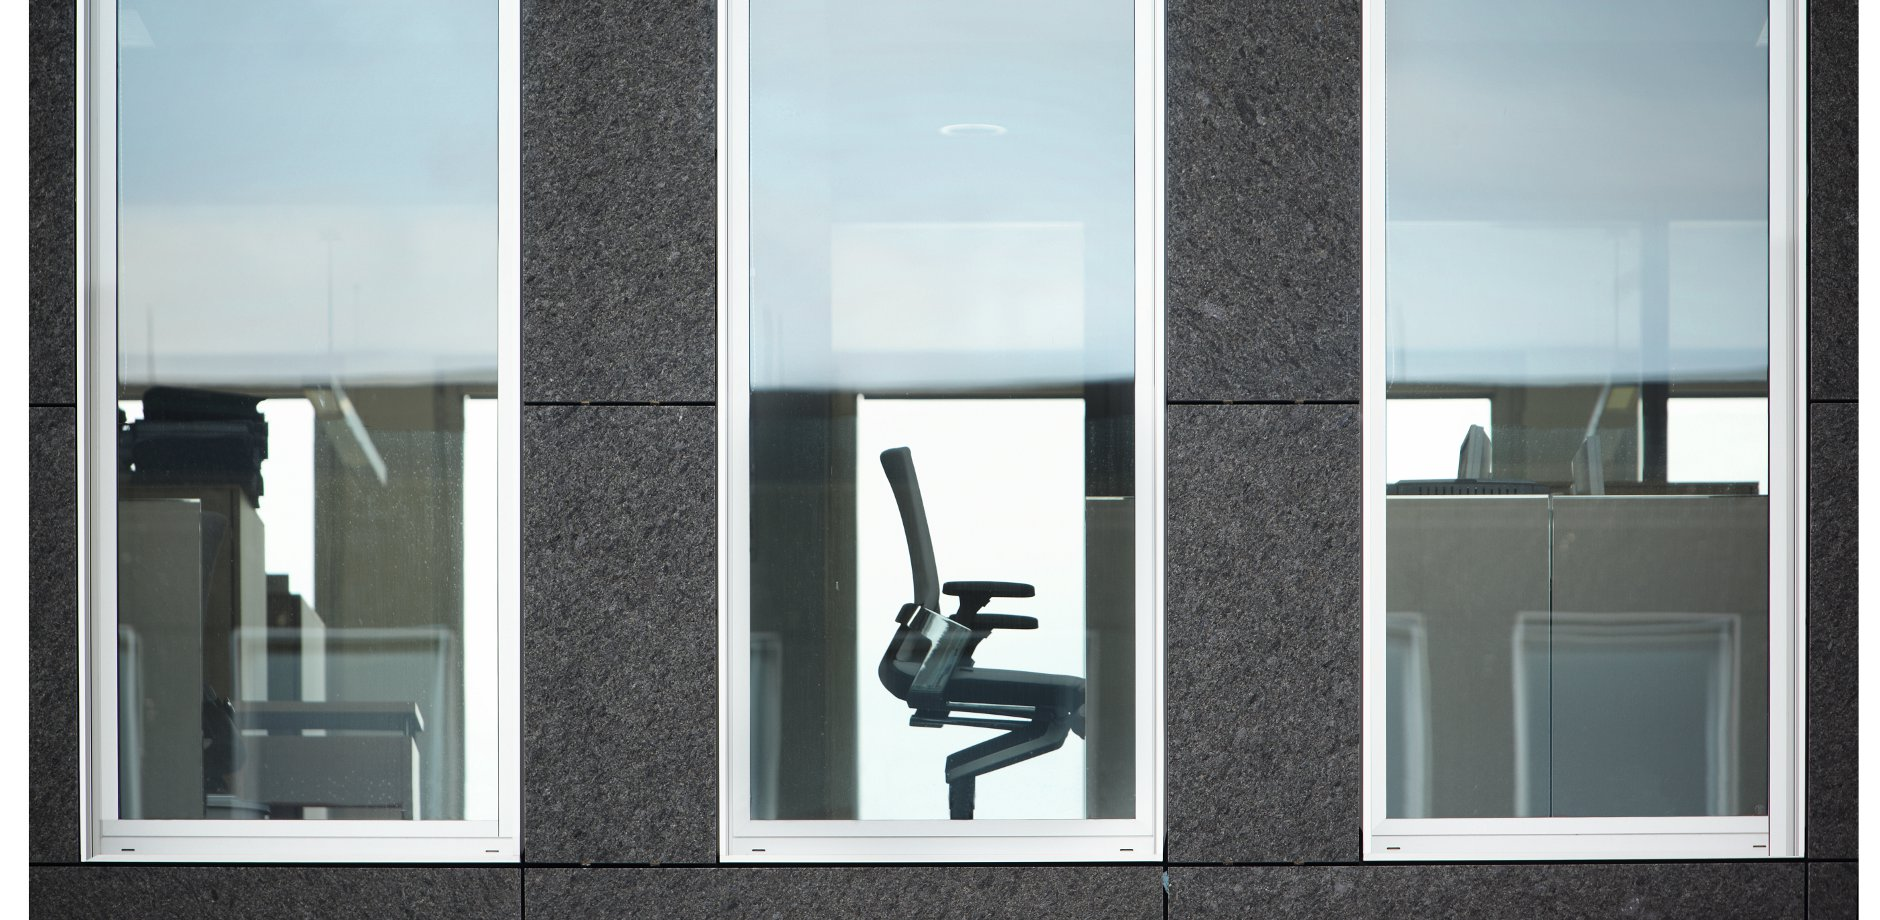 Landessparkasse Oldenburg, ON office chair by Wilkhahn